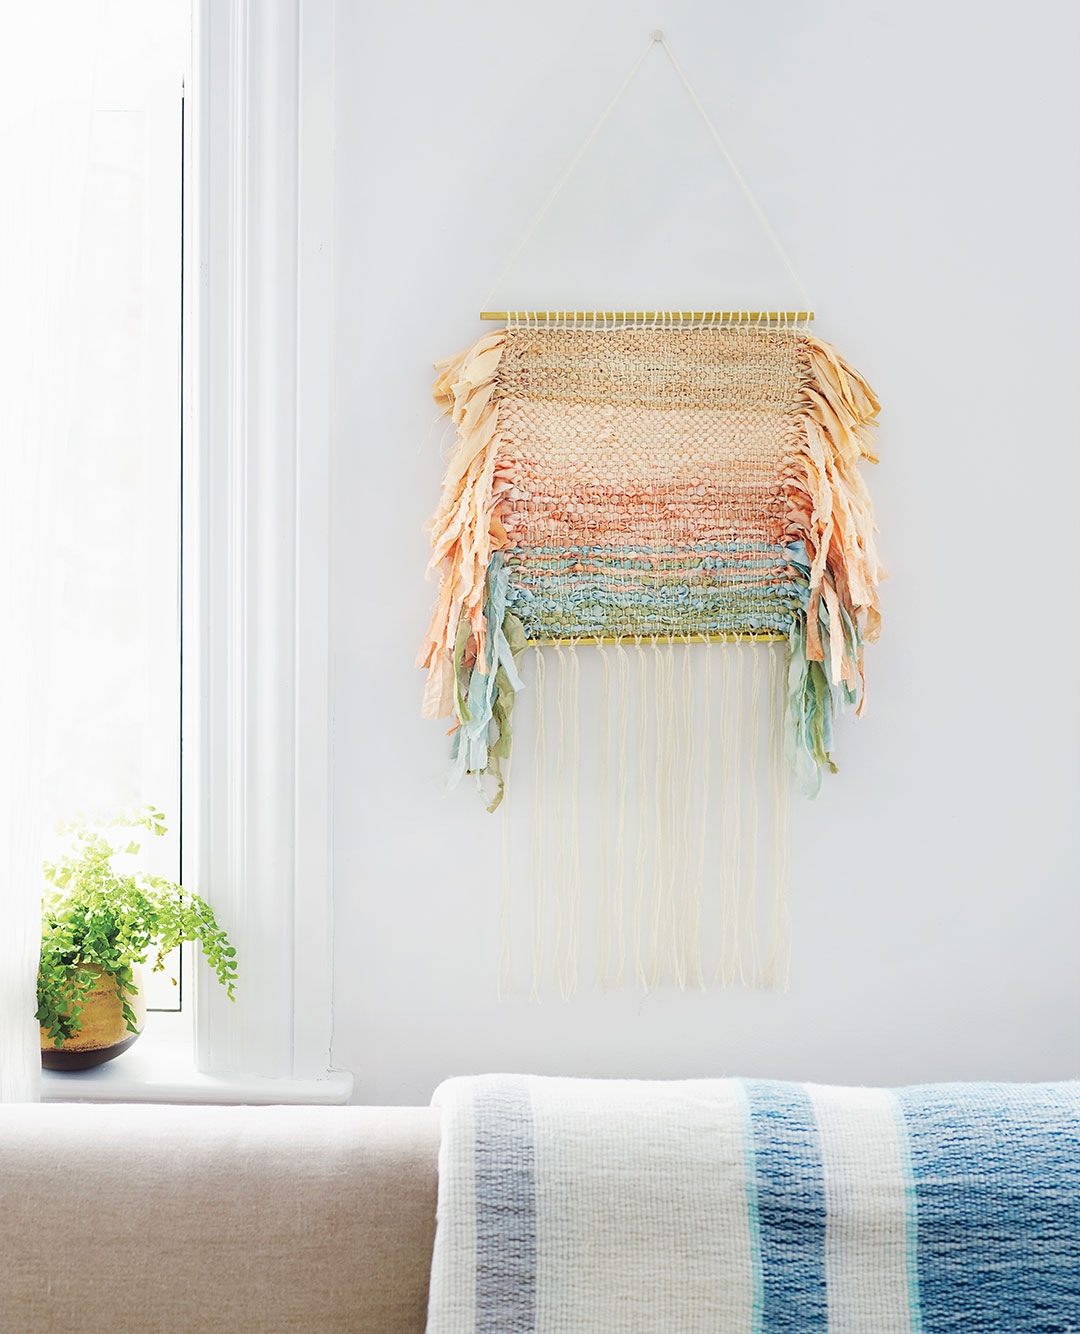 How To Make A Fabric Strip Wall Hanging Using A Yarn Wall